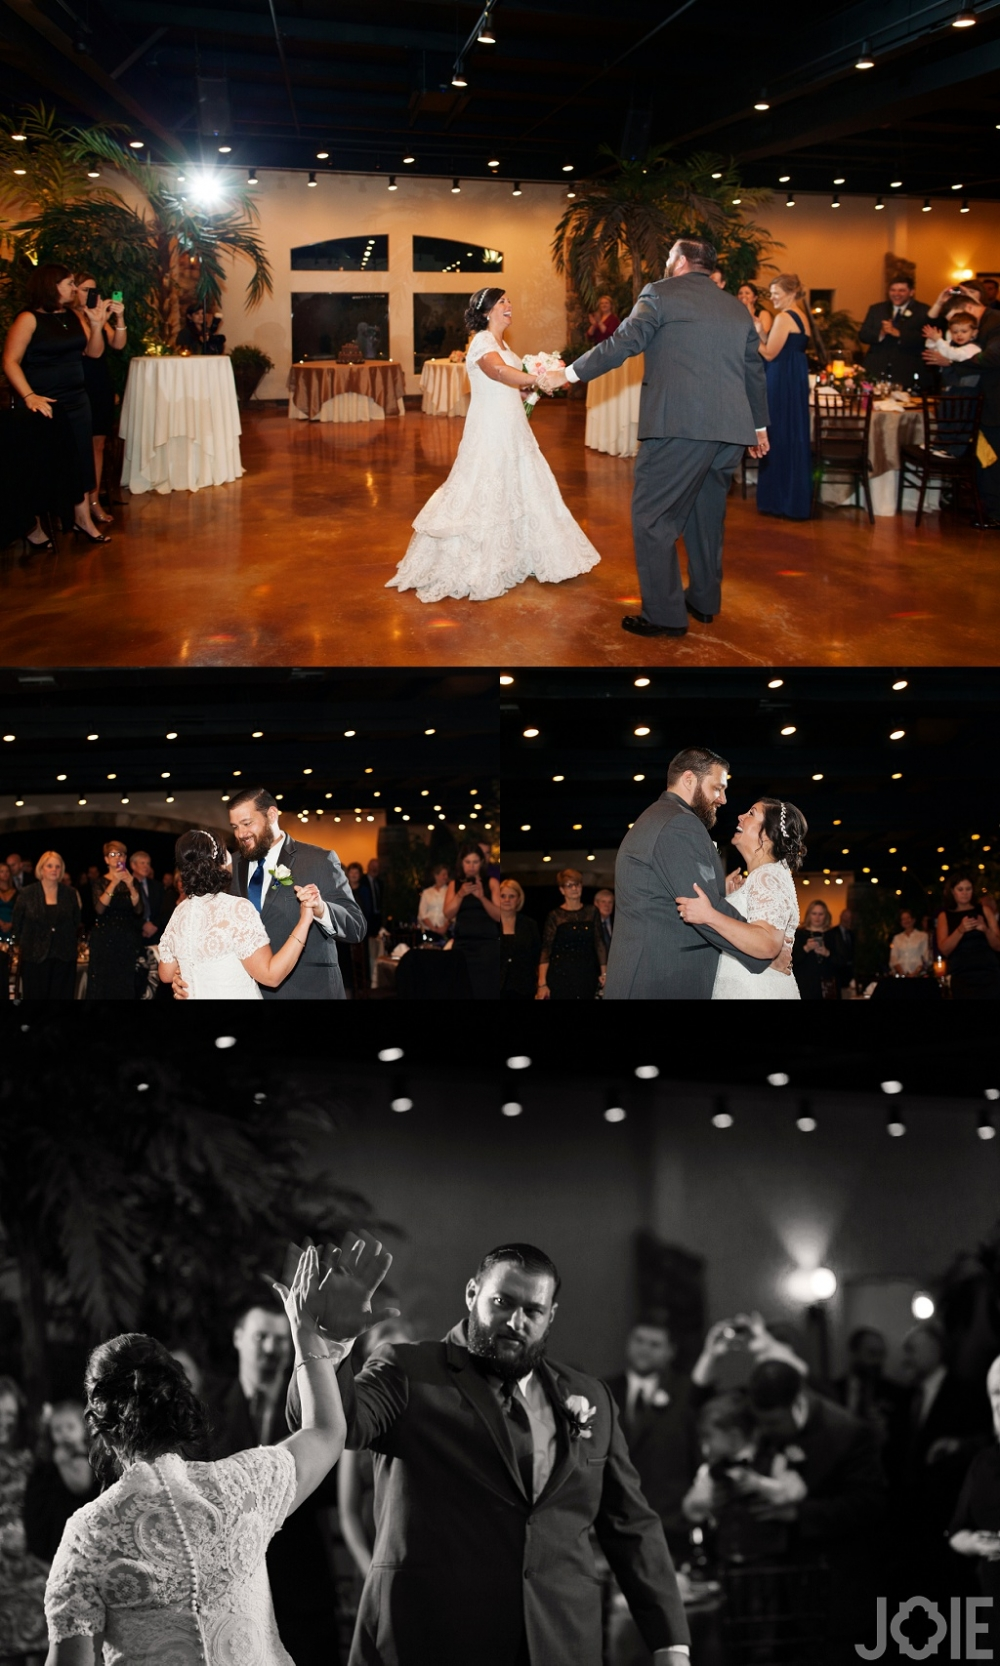 Wedding at Agave Real by Joie Photographie Houston